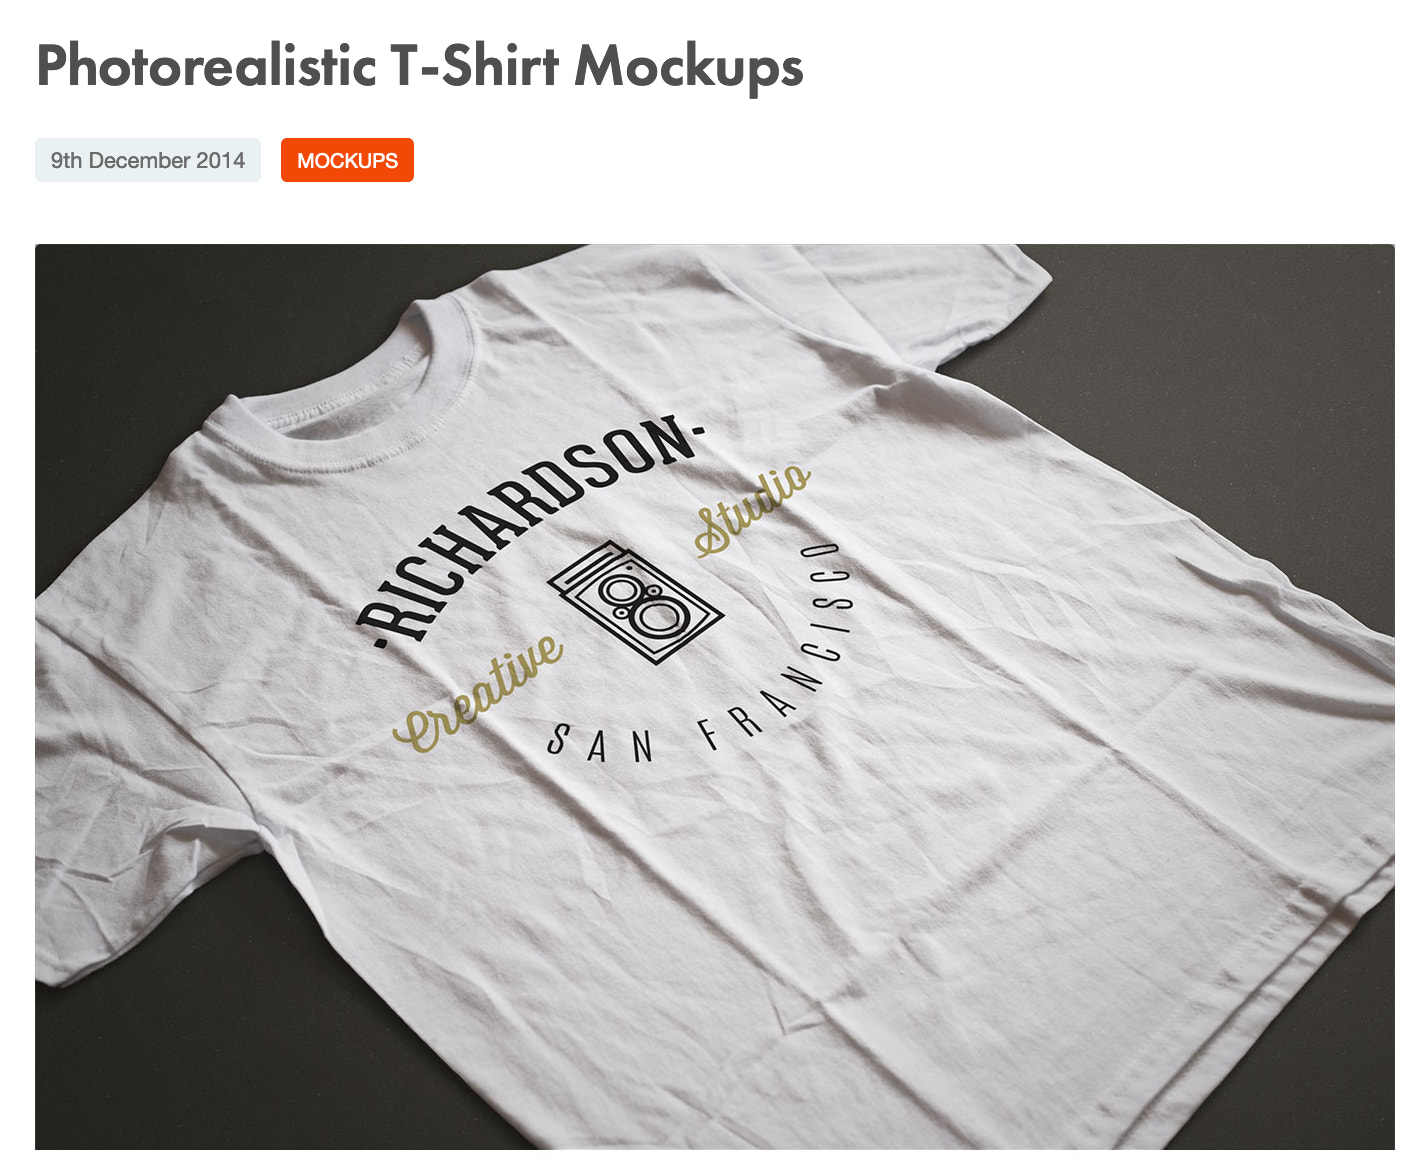 Photorealistic t shirt from pixelbuddah